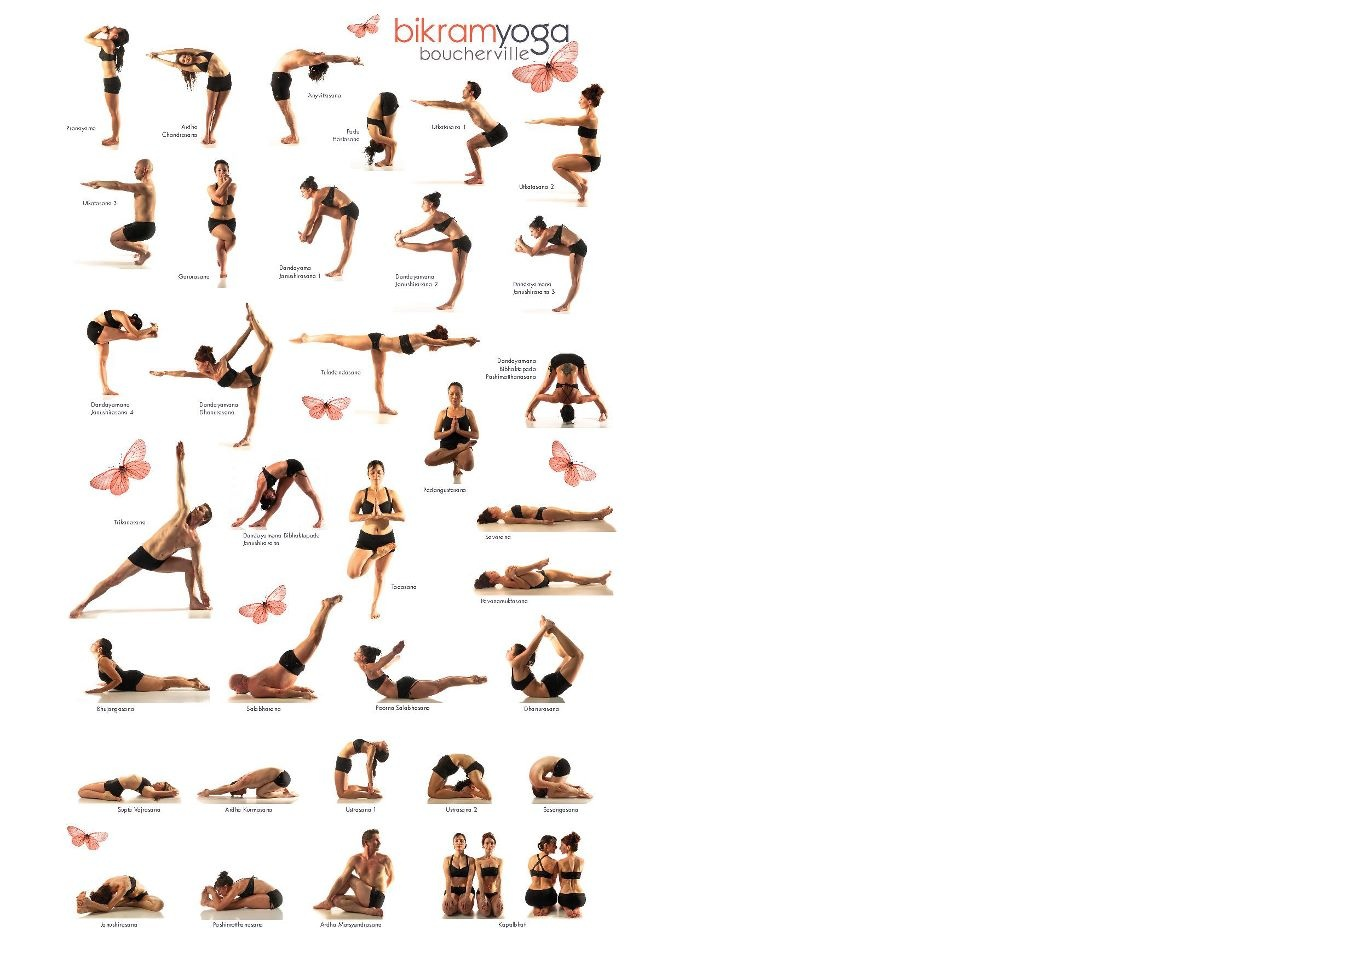 photo relating to Bikram Yoga Poses Chart Printable referred to as Warm Yoga Pose Chart